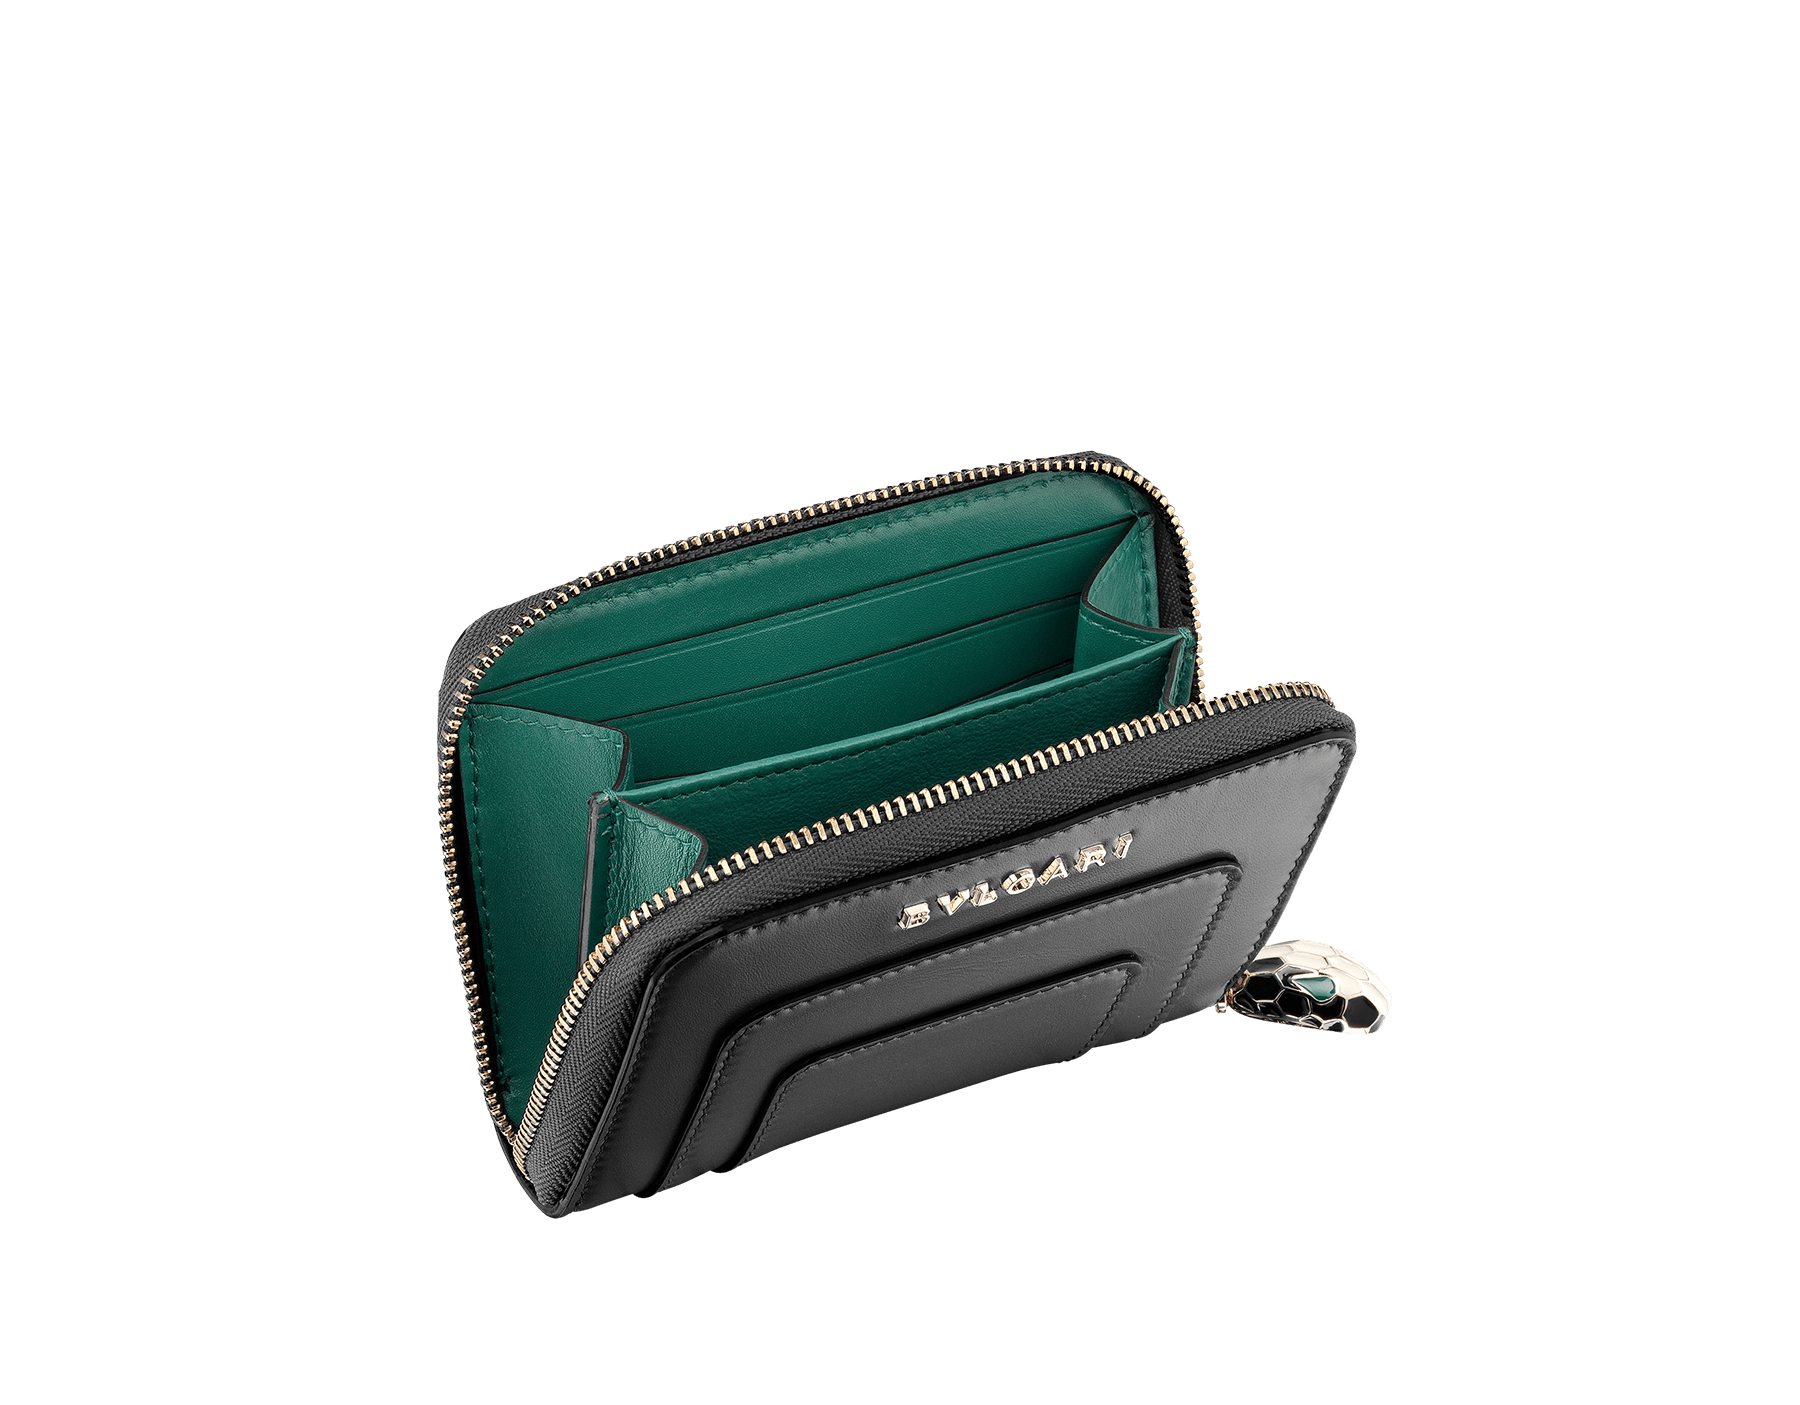 Mini zipped Wallet in black and emerald green calf leather with malachite nappa lining. Brass light gold plated hardware. 280375 image 2